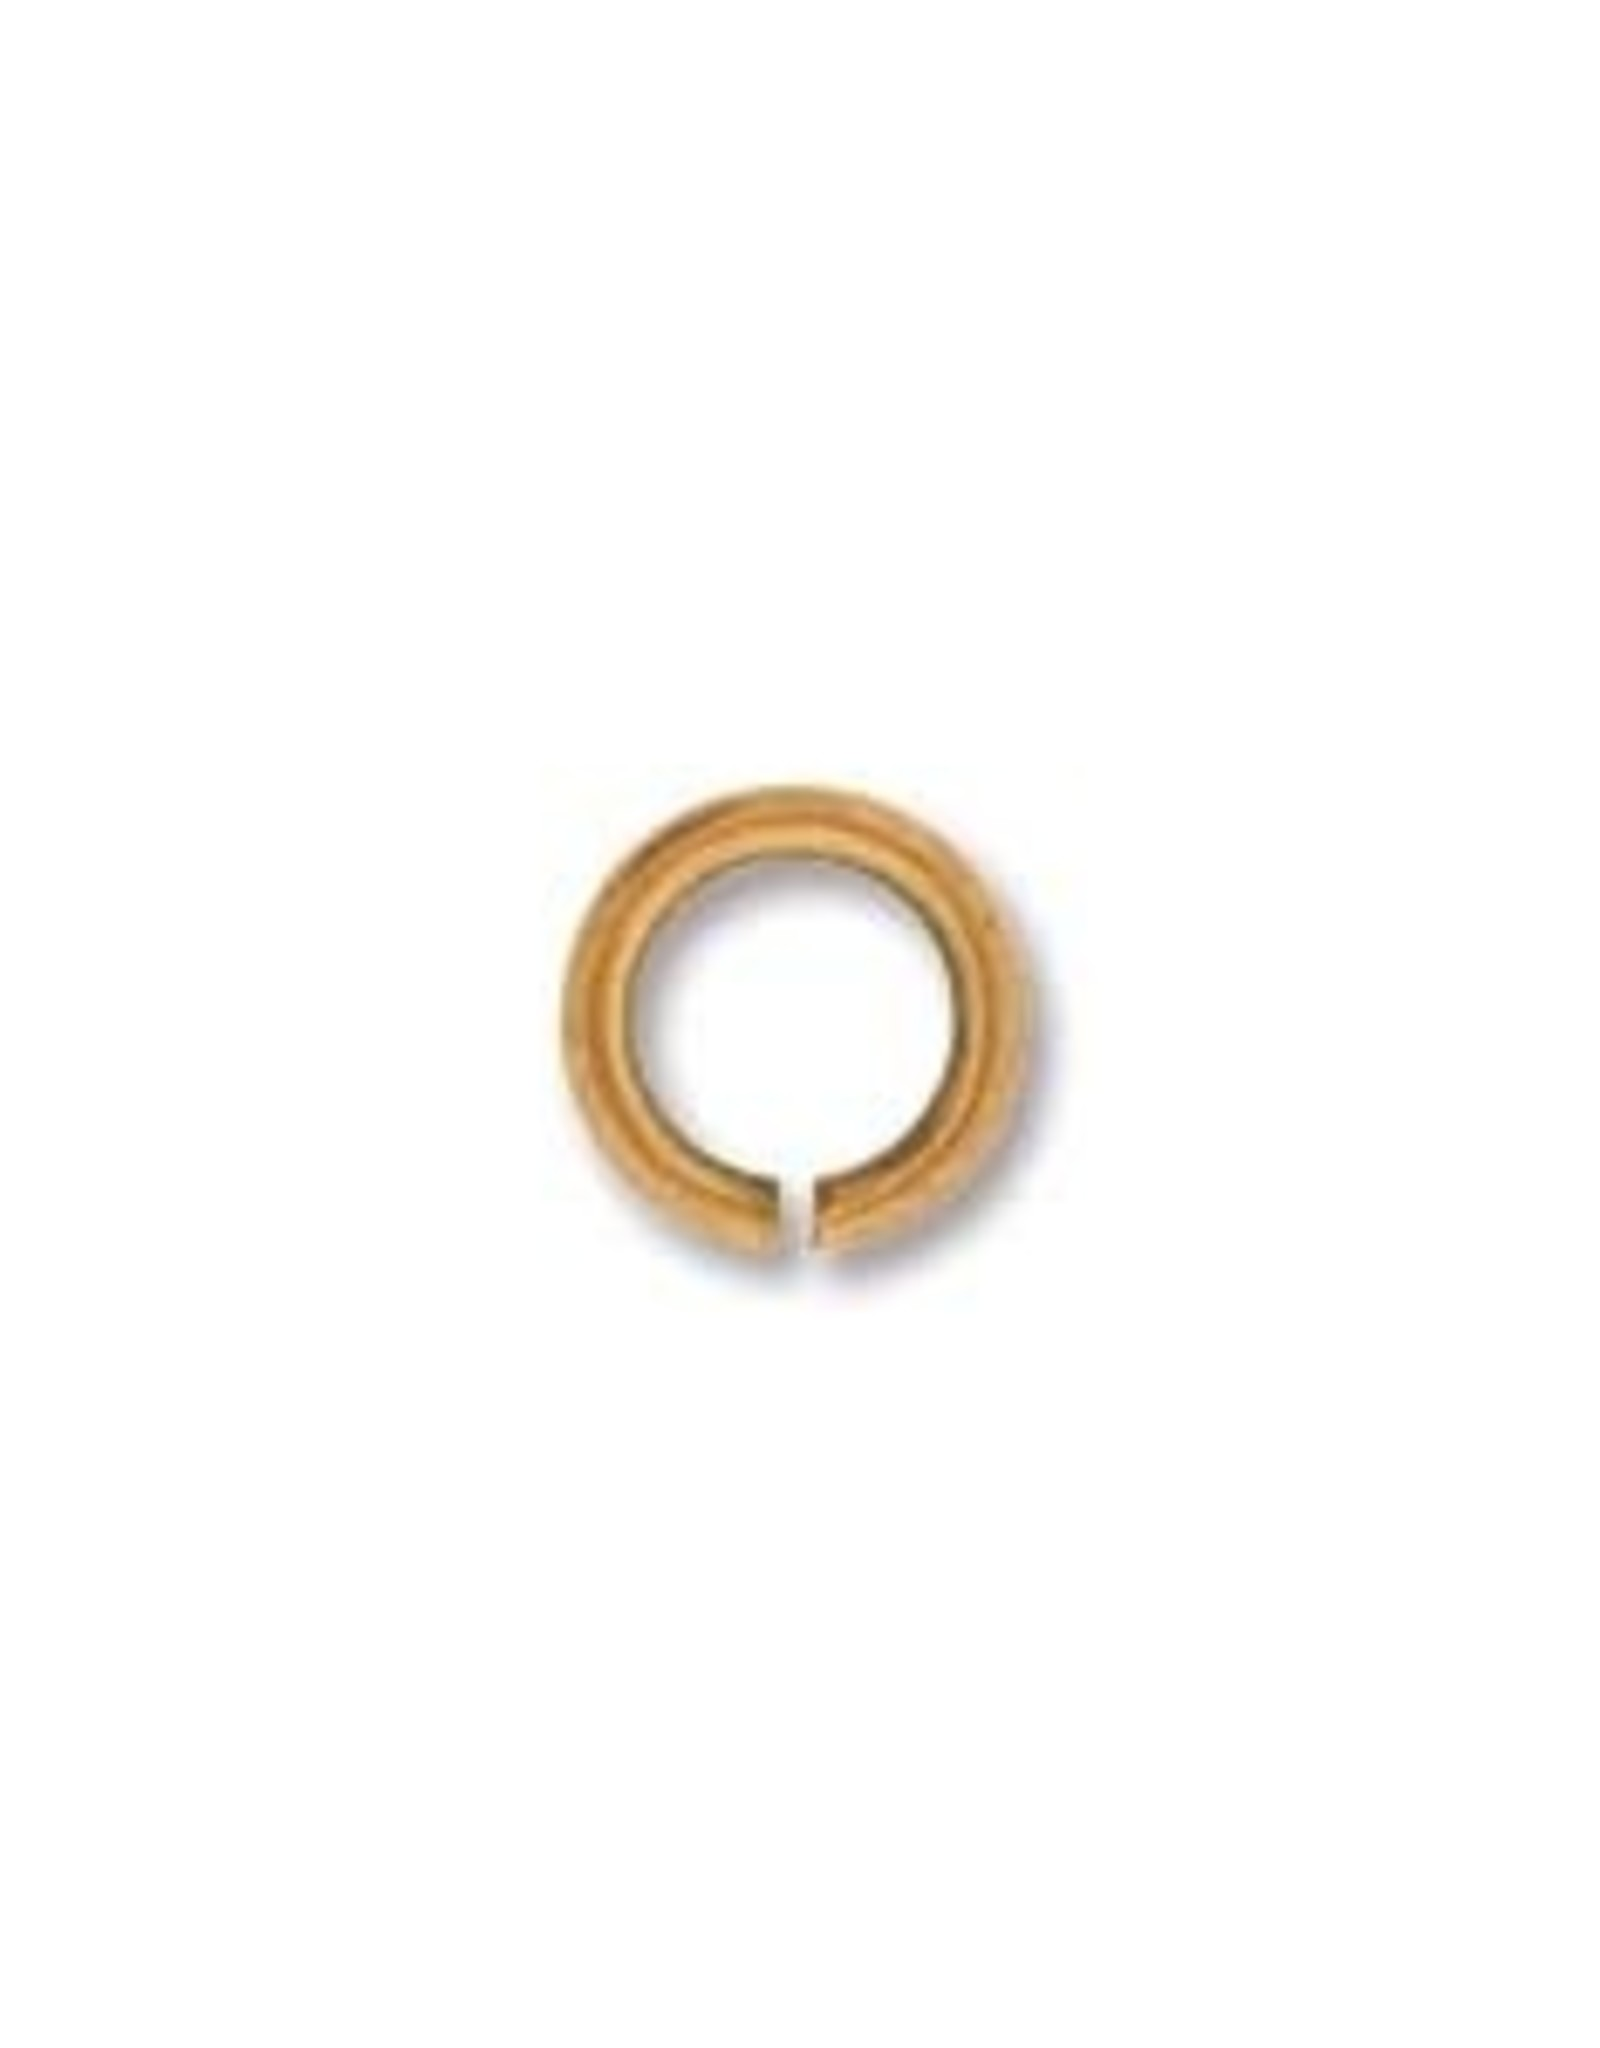 6mm Jump Ring Antique Copper Plate Qty 144